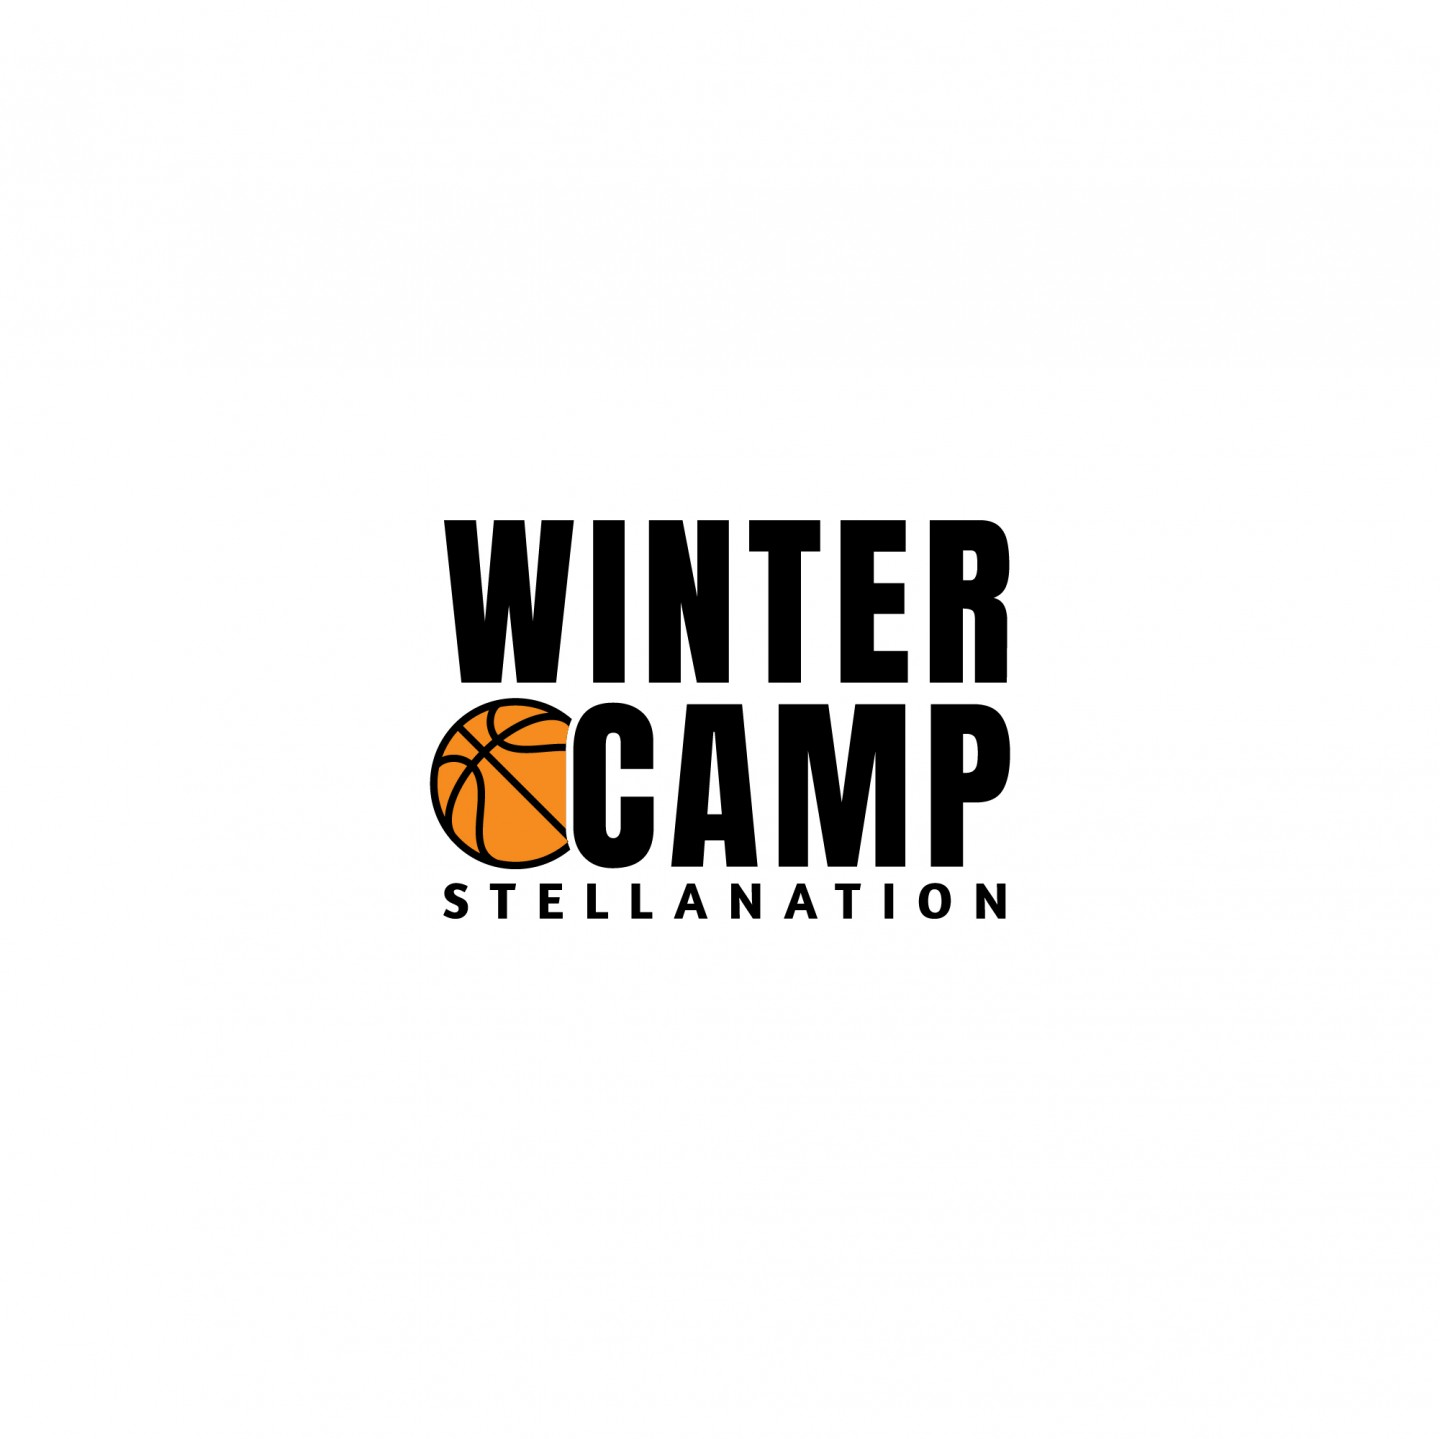 Winter Camp_1_2